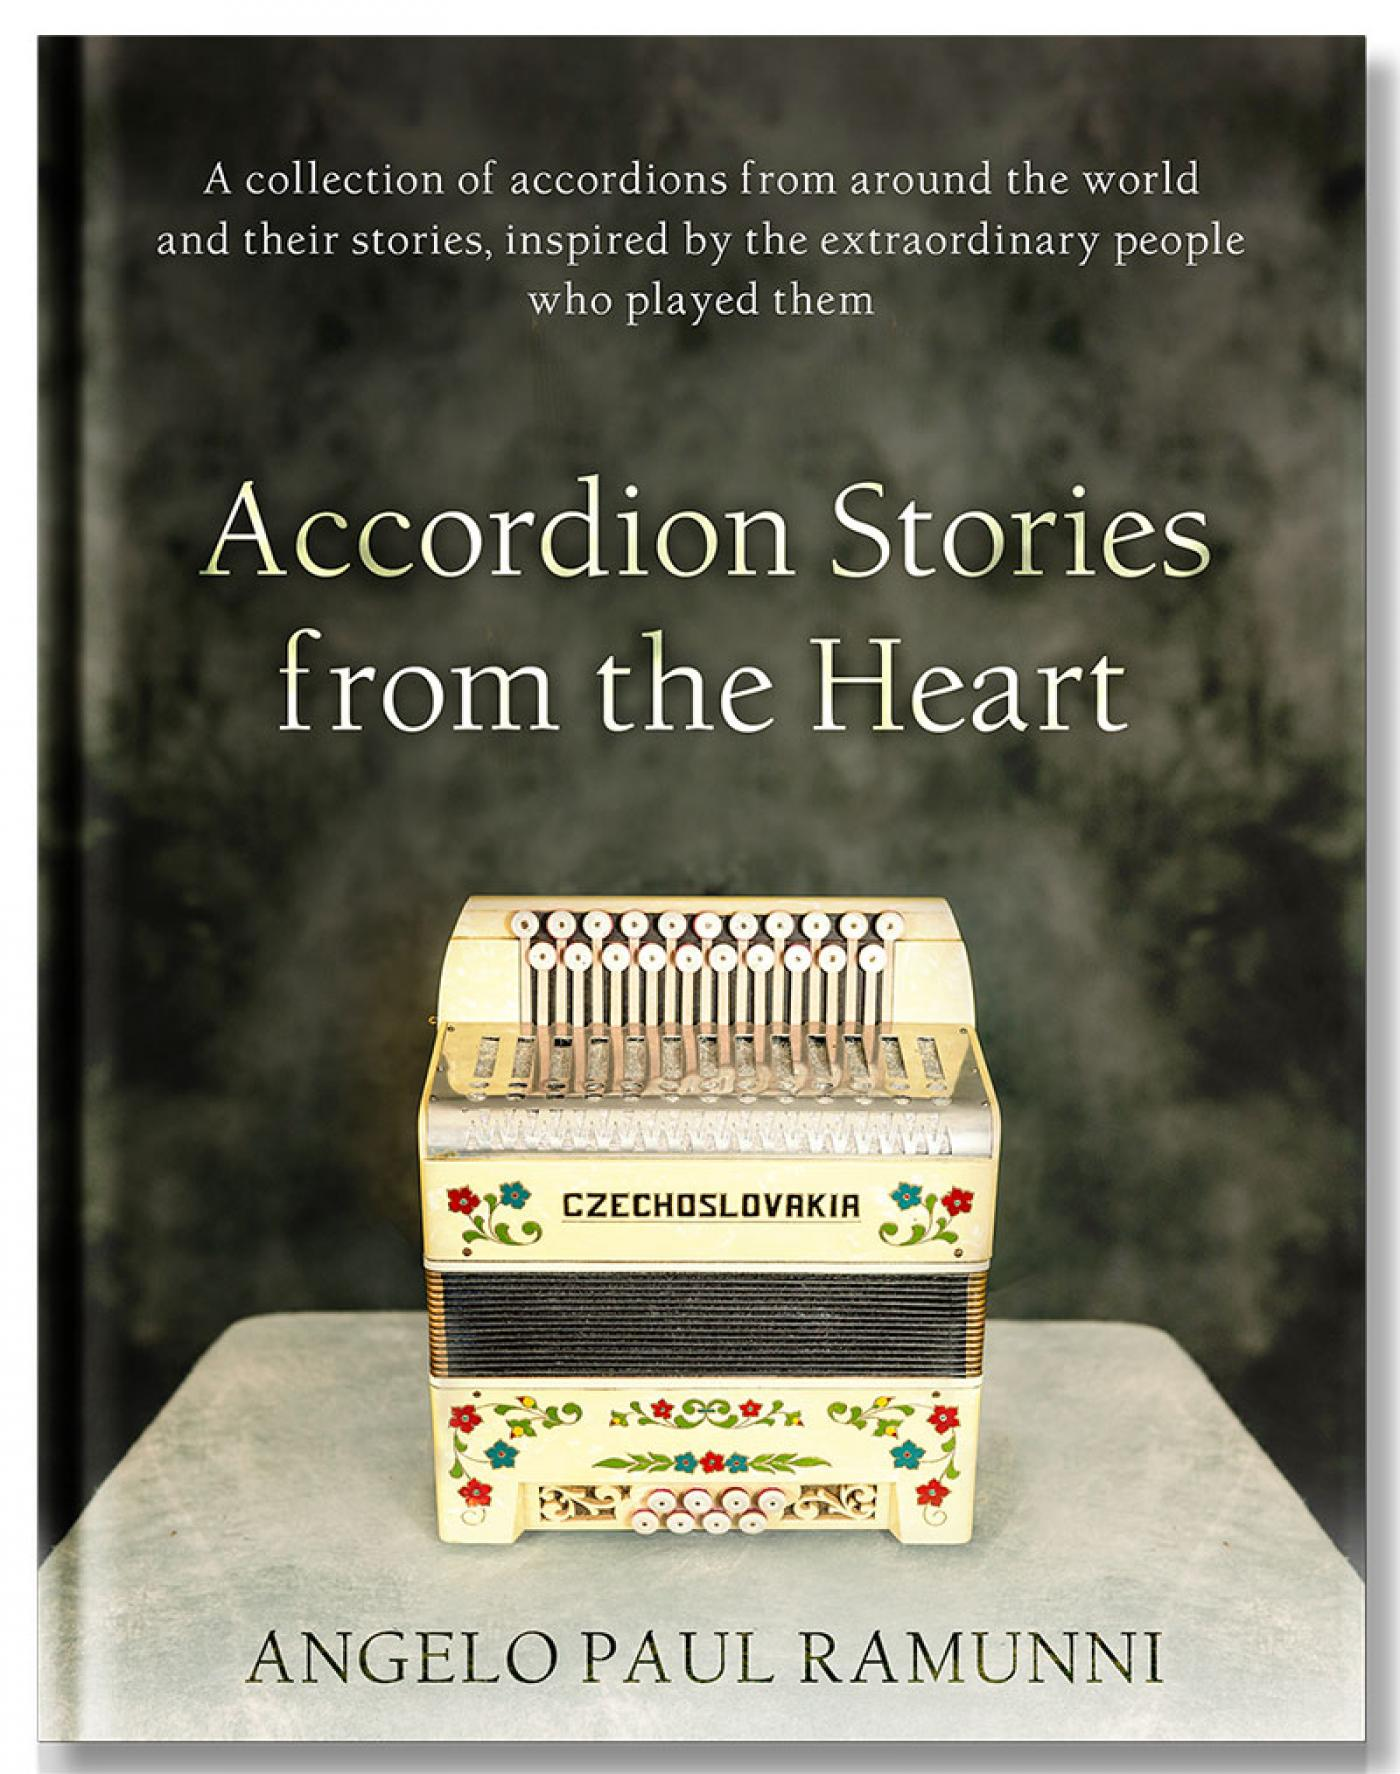 <h3>Stories from the Heart Book Signing and Mini Accordion Concert</h3>